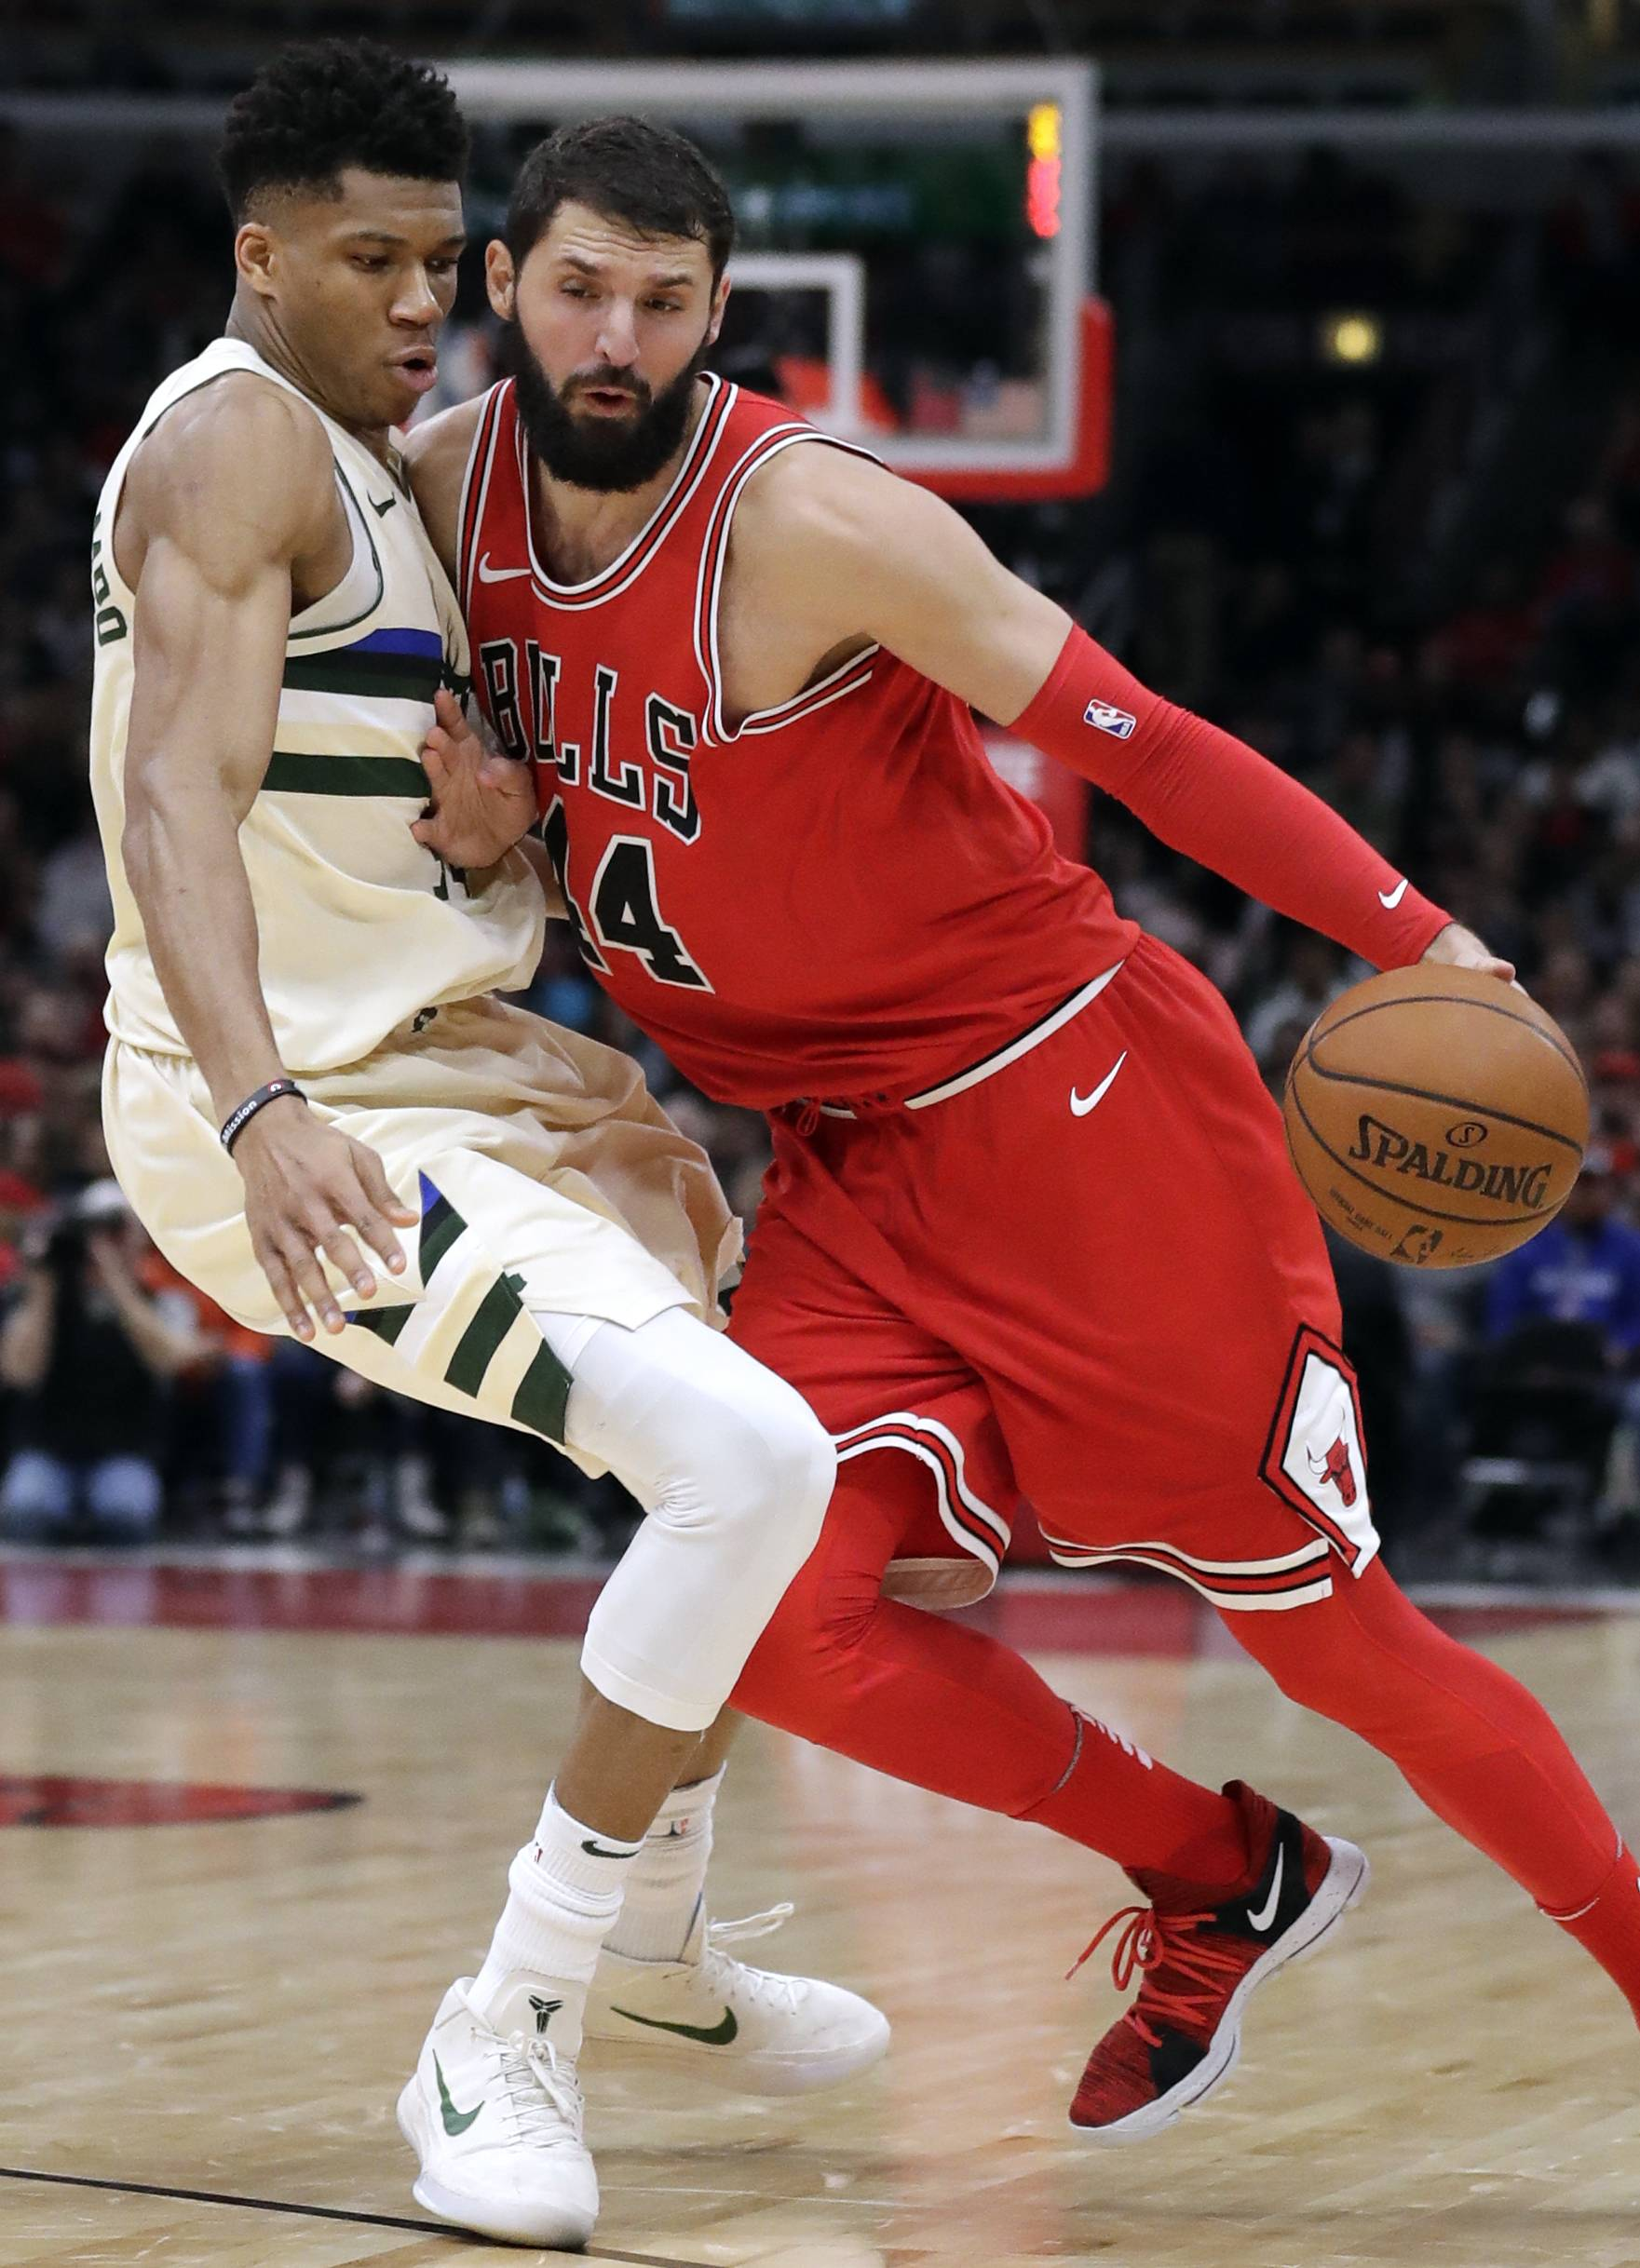 Chicago Bulls forward Nikola Mirotic, right, drives against Milwaukee Bucks forward Giannis Antetokounmpo during the second half of an NBA basketball game Sunday, Jan. 28, 2018, in Chicago.